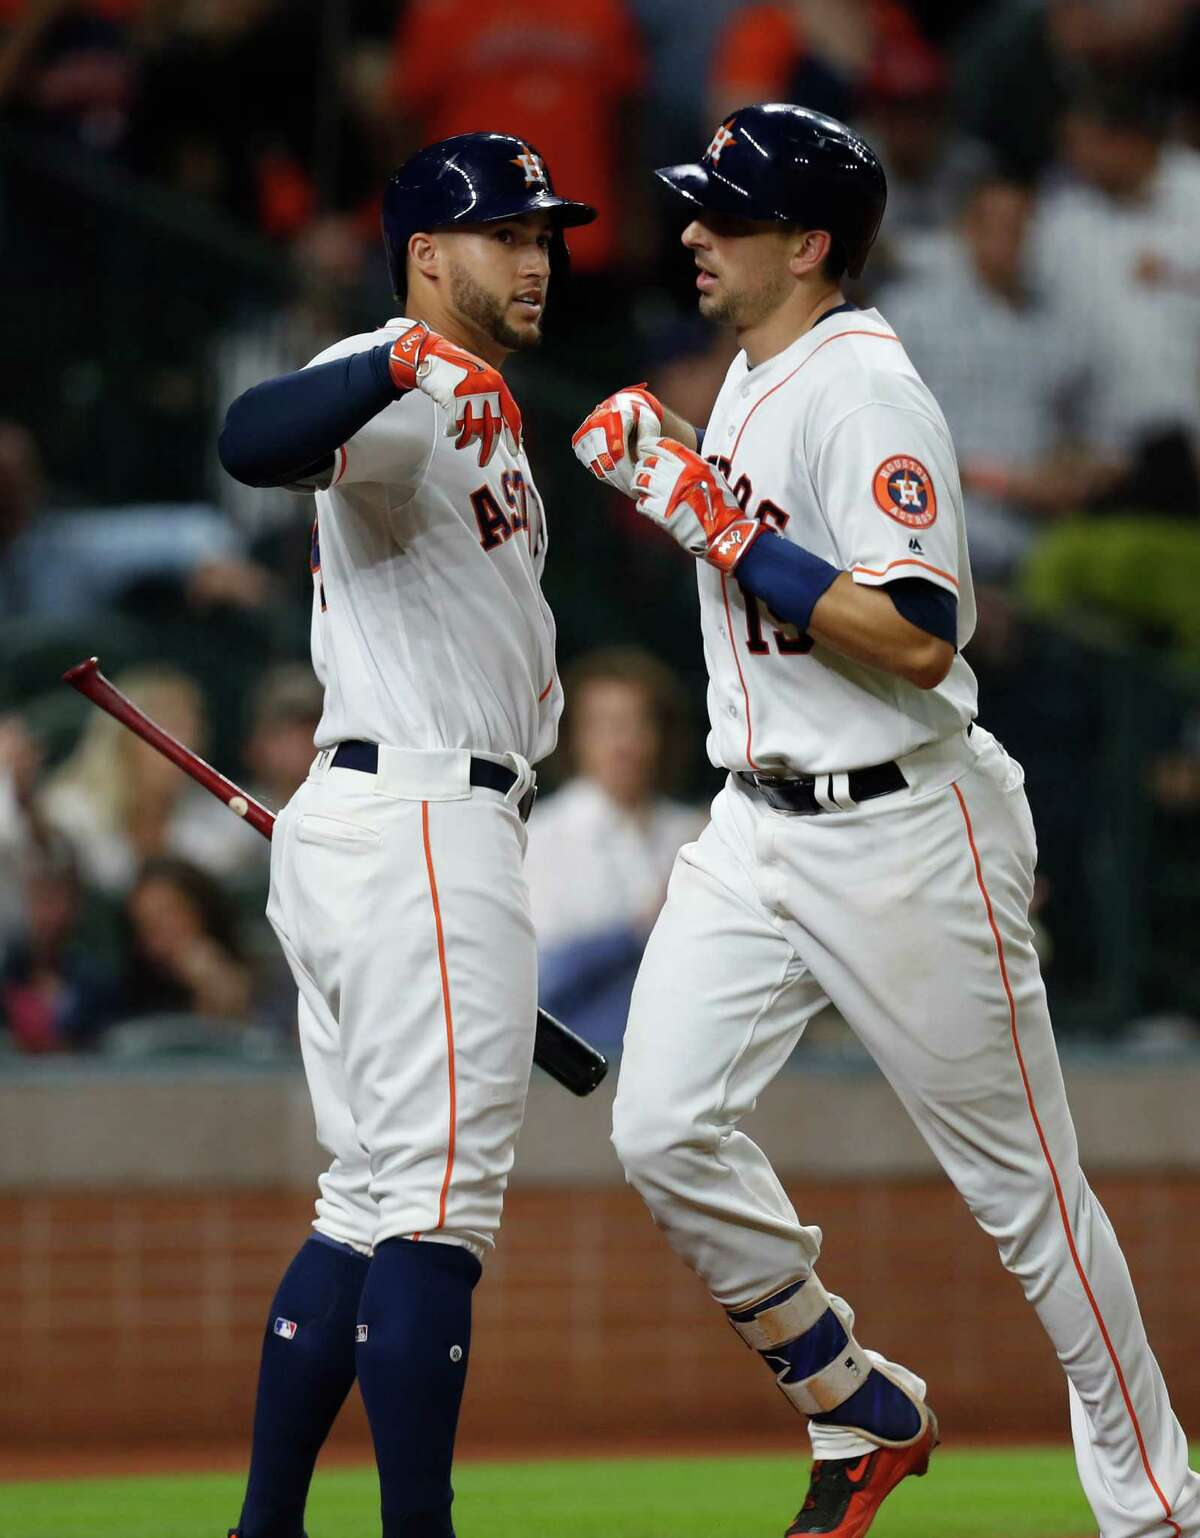 Houston Astros Jason Castro (15) celebrates his home run with George Springer (4) during the sixth inning of an MLB game at Minute Maid Park, Tuesday, Sept. 13, 2016 in Houston.